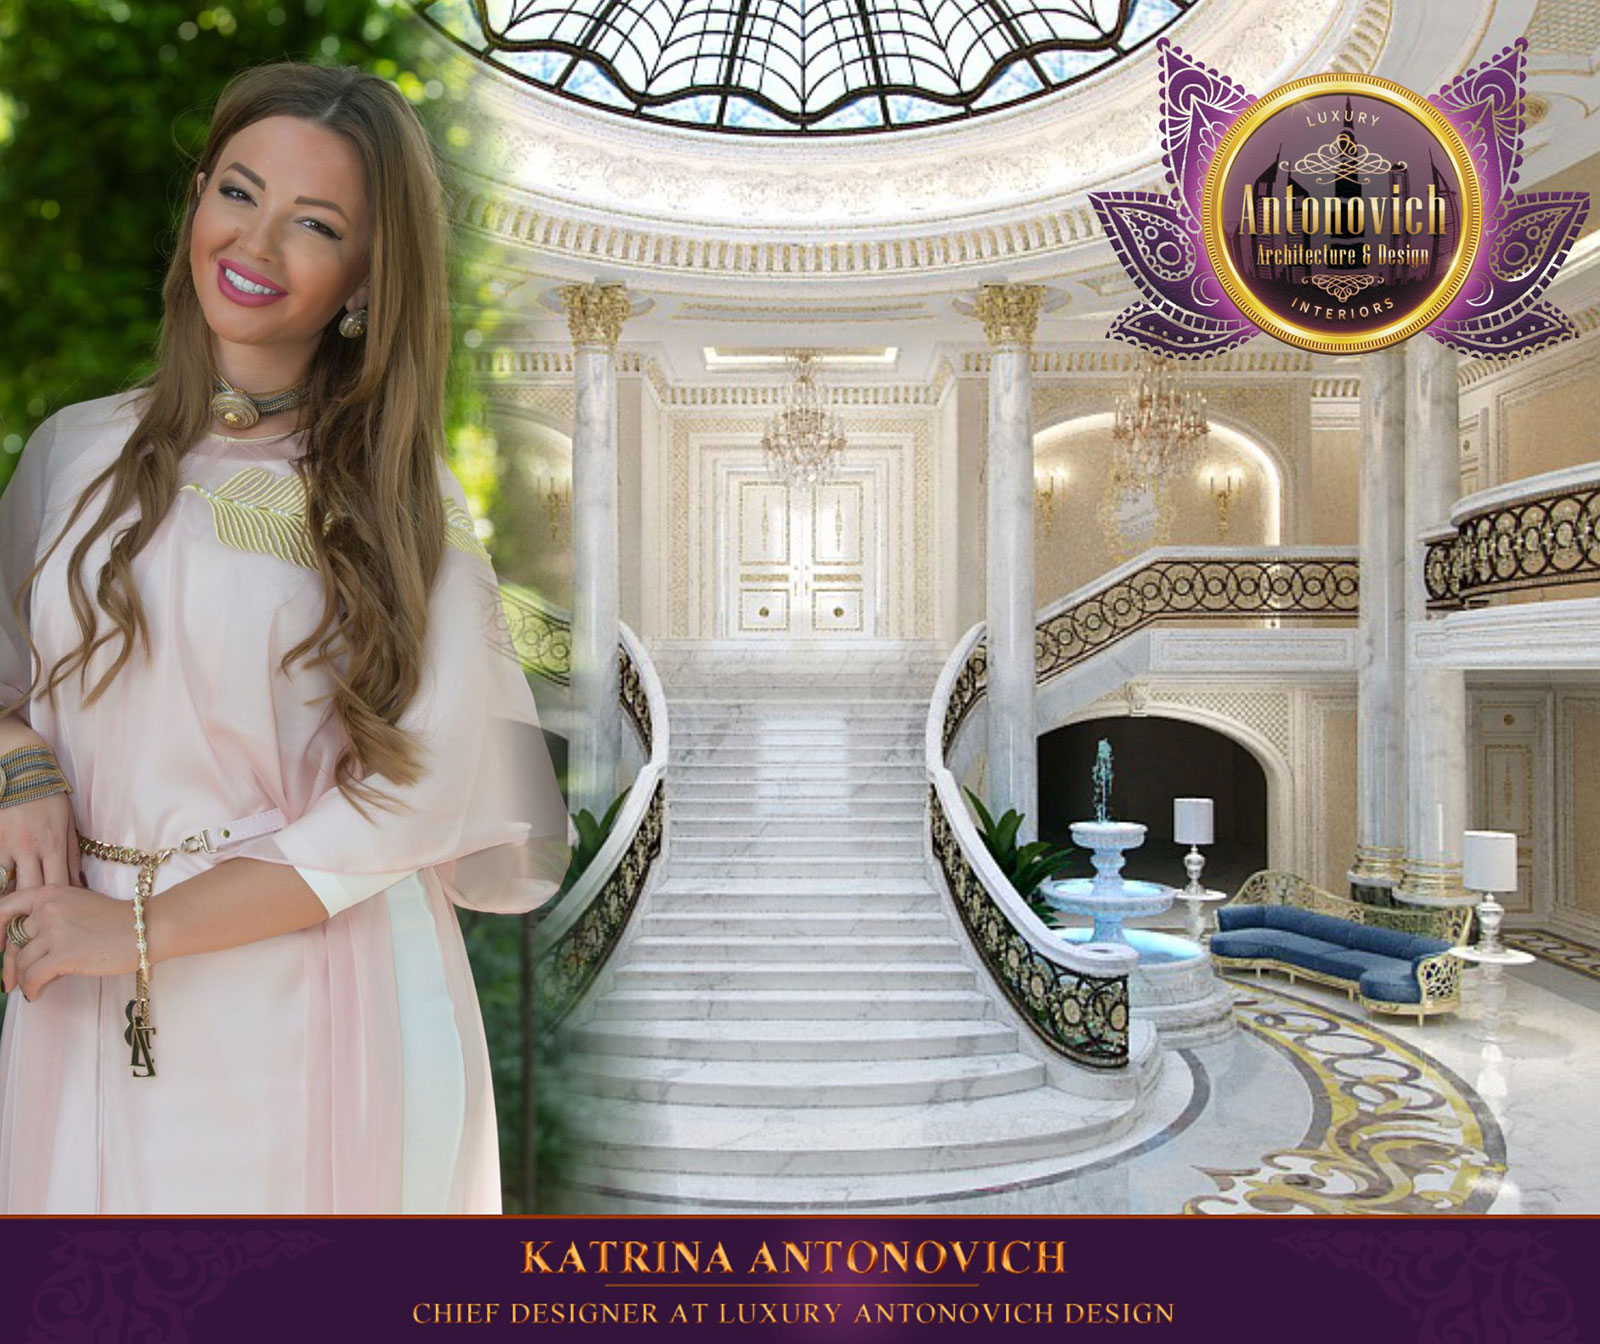 Katrina Antonovich Luxury Interior Design